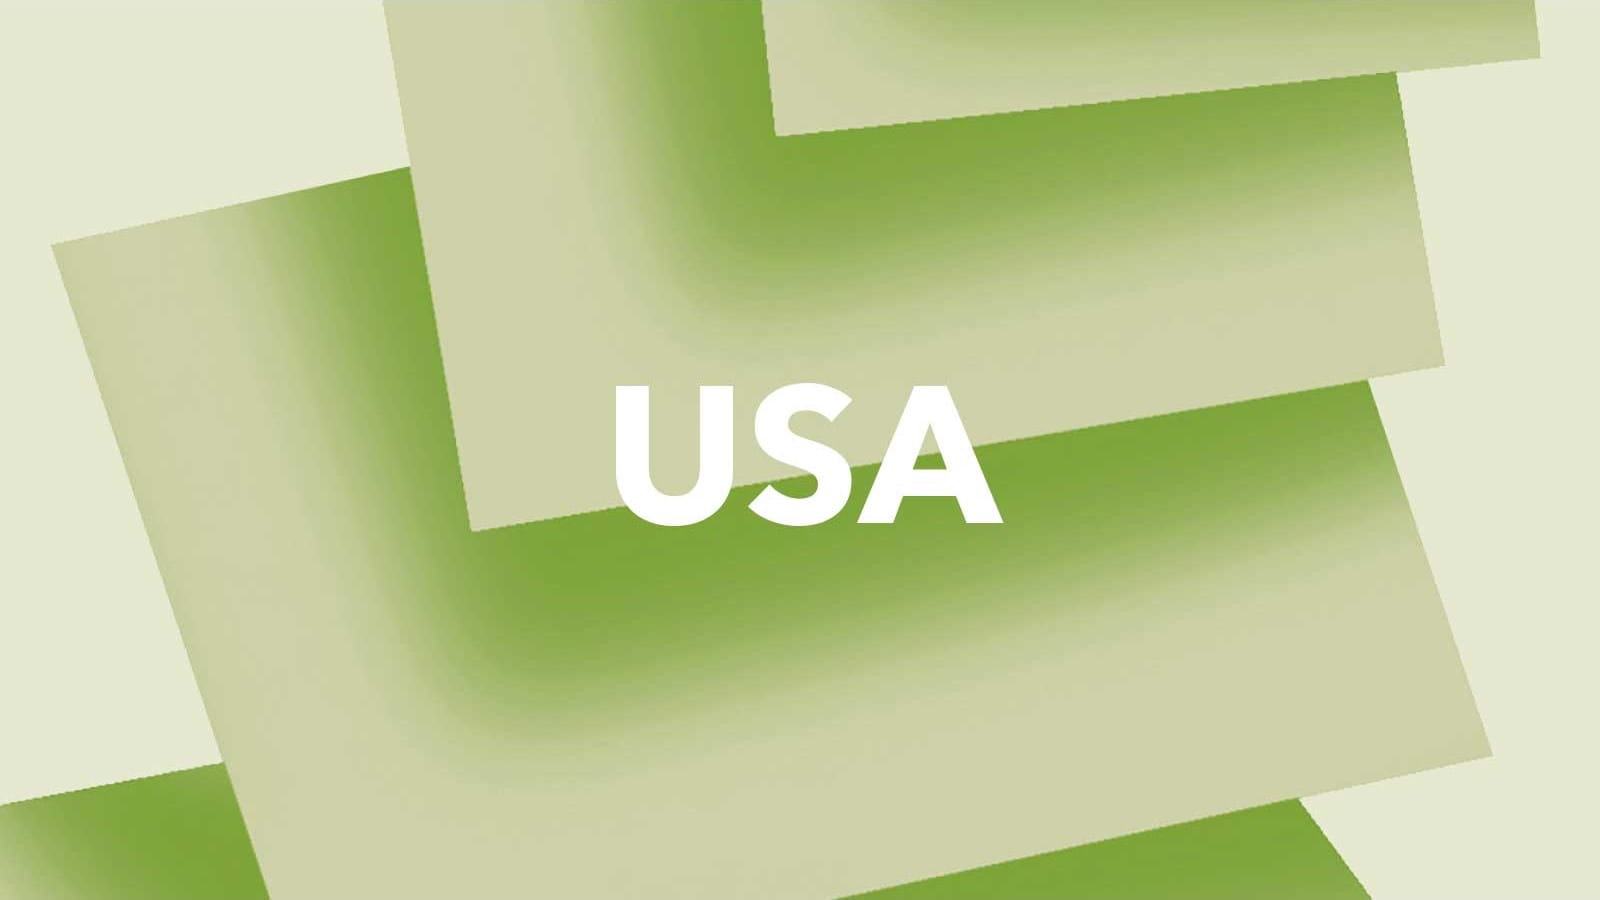 The letters 'USA' on a green background